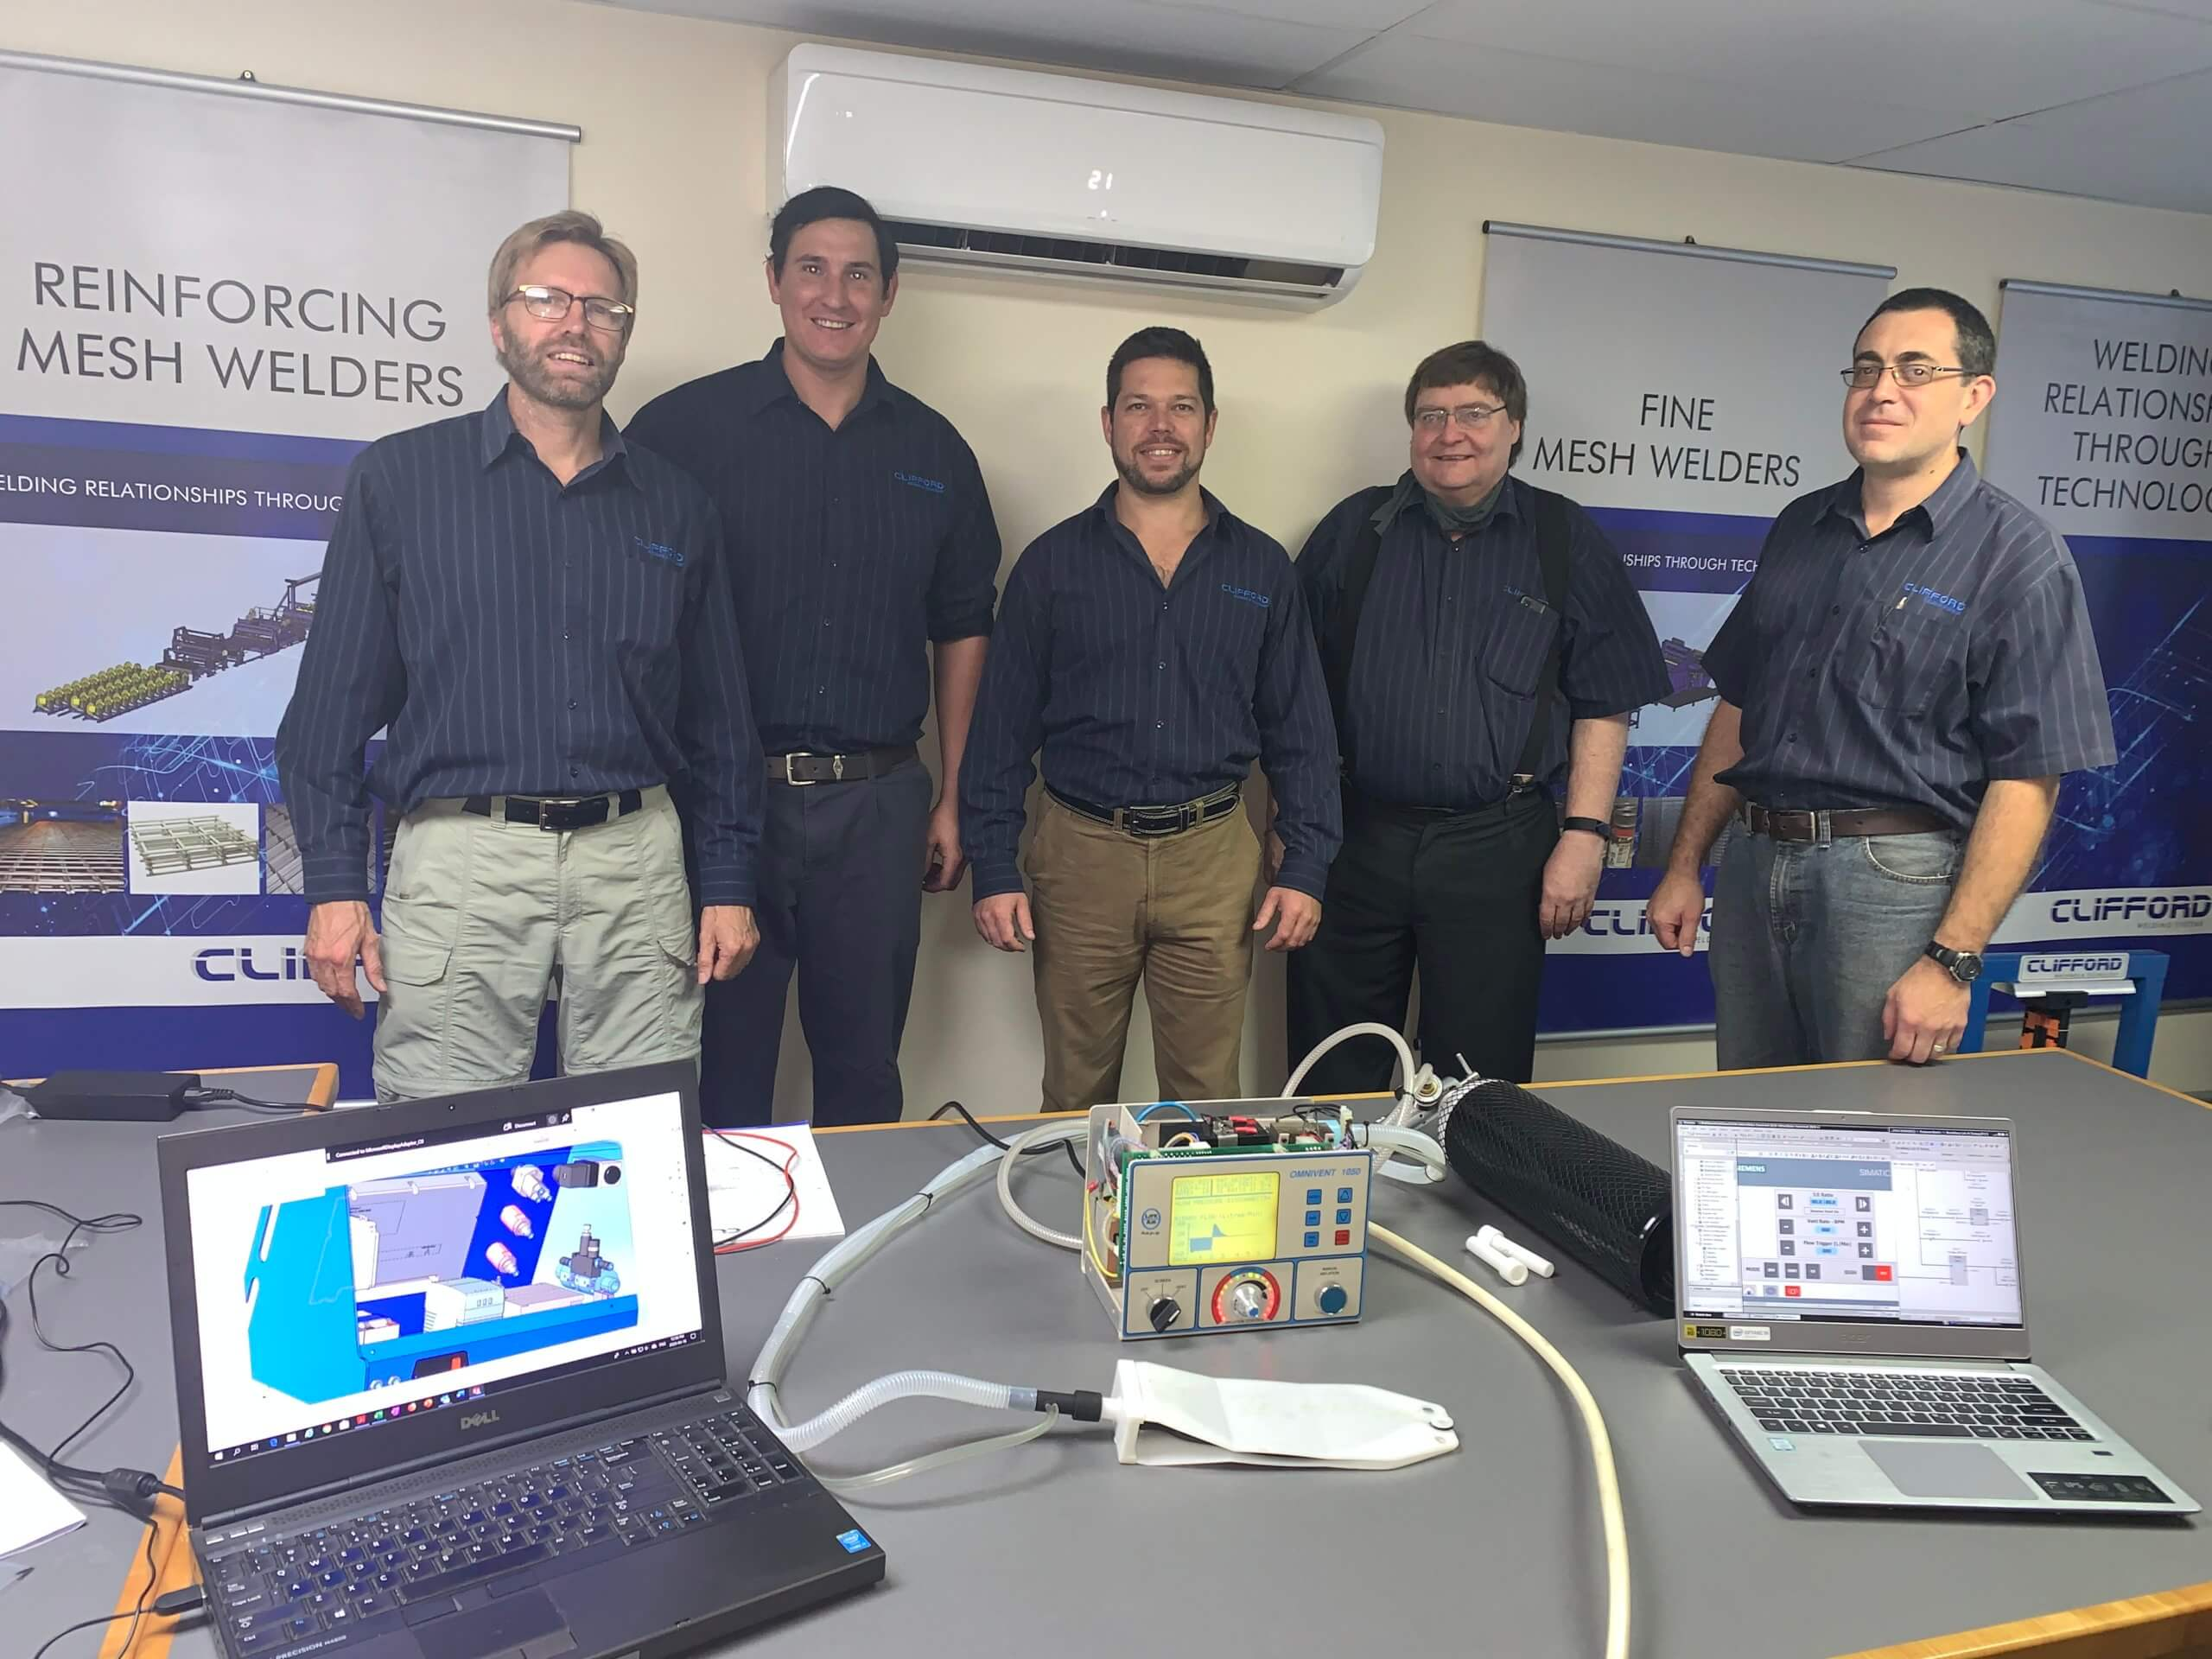 Iain Ambler, Quintis Hatting, Phillip Pretorius, Steve Cilliers and Carl-Johan van Eeden of Clifford Machines & Technology.